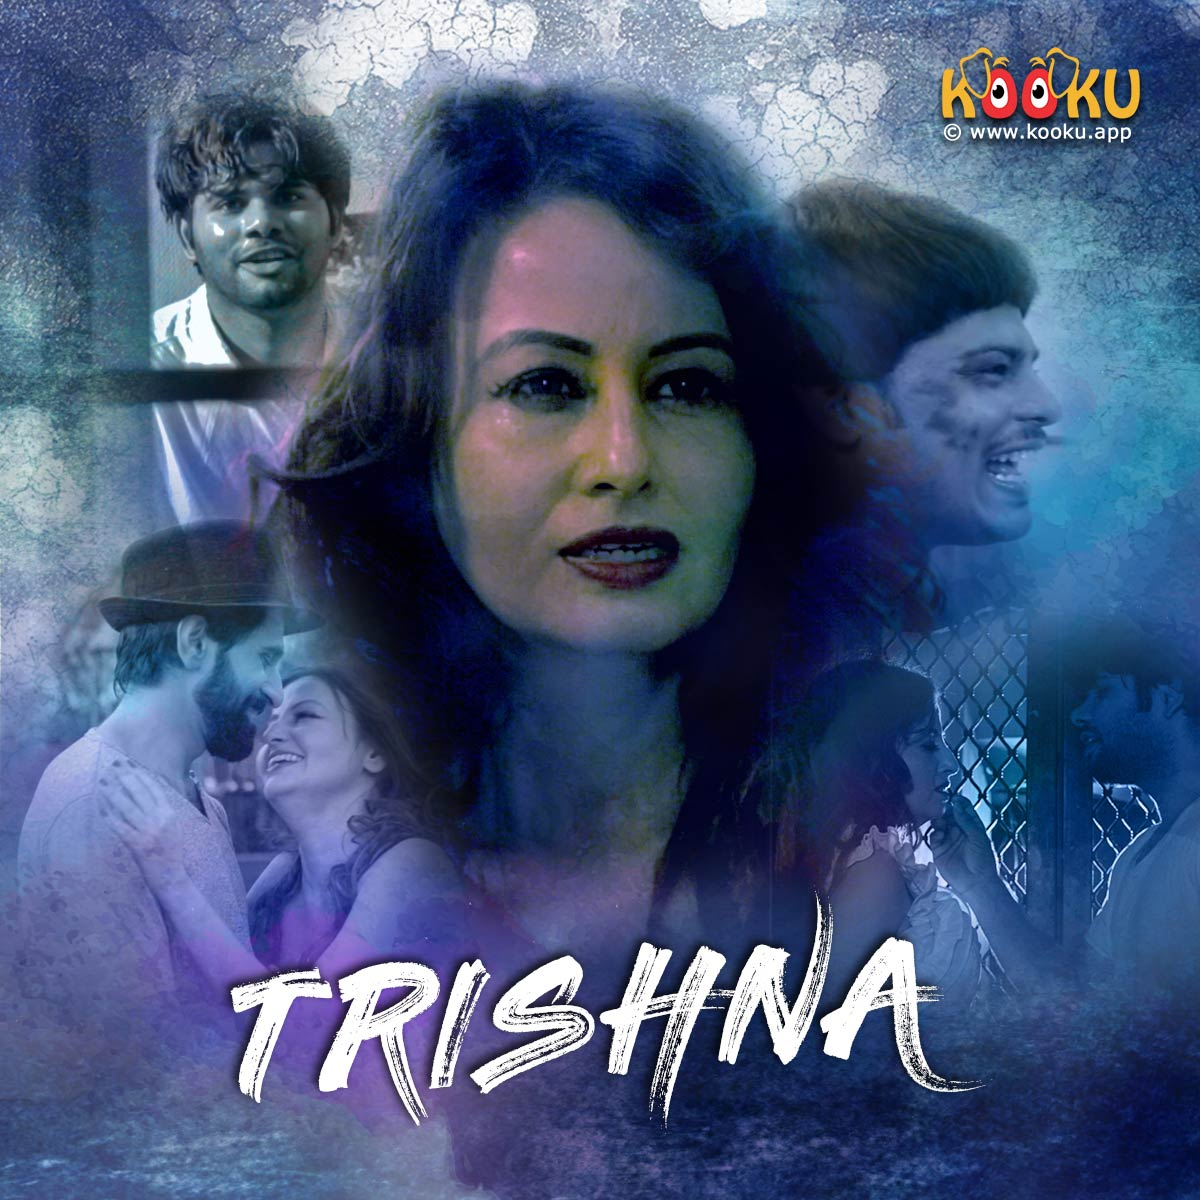 Trishna 2020 S01 Hindi Kooku App Web Series Official Trailer 720p HDRip 30MB x264 AAC